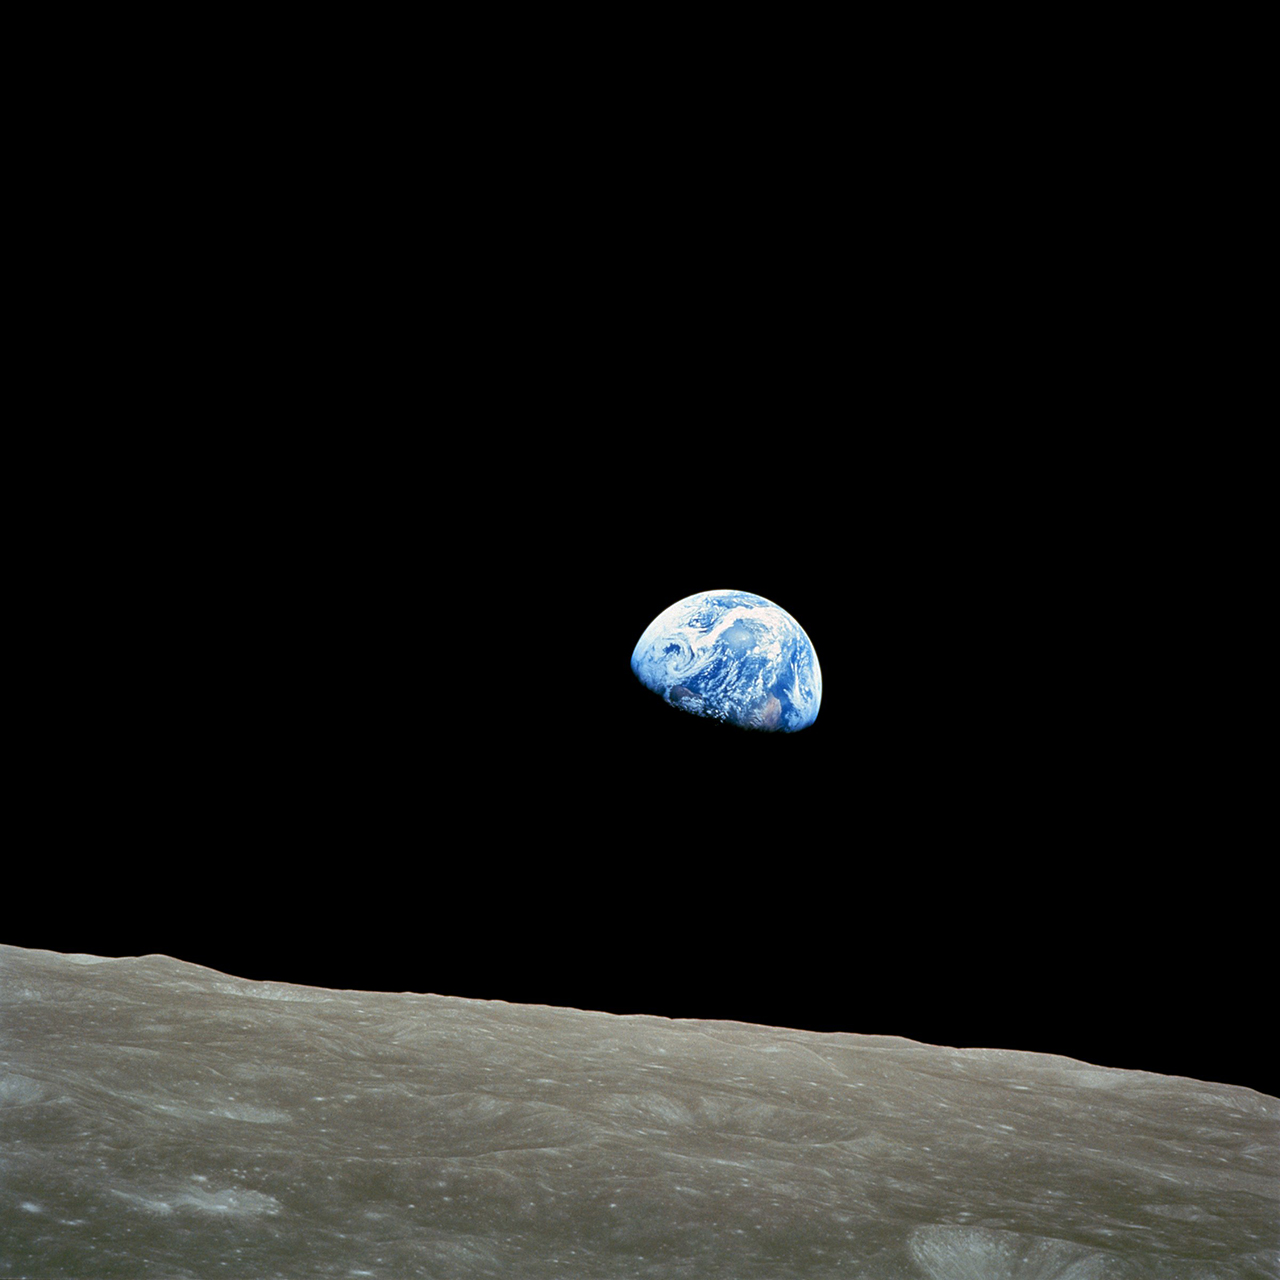 Earthrise image for photos of Earth from various points in space